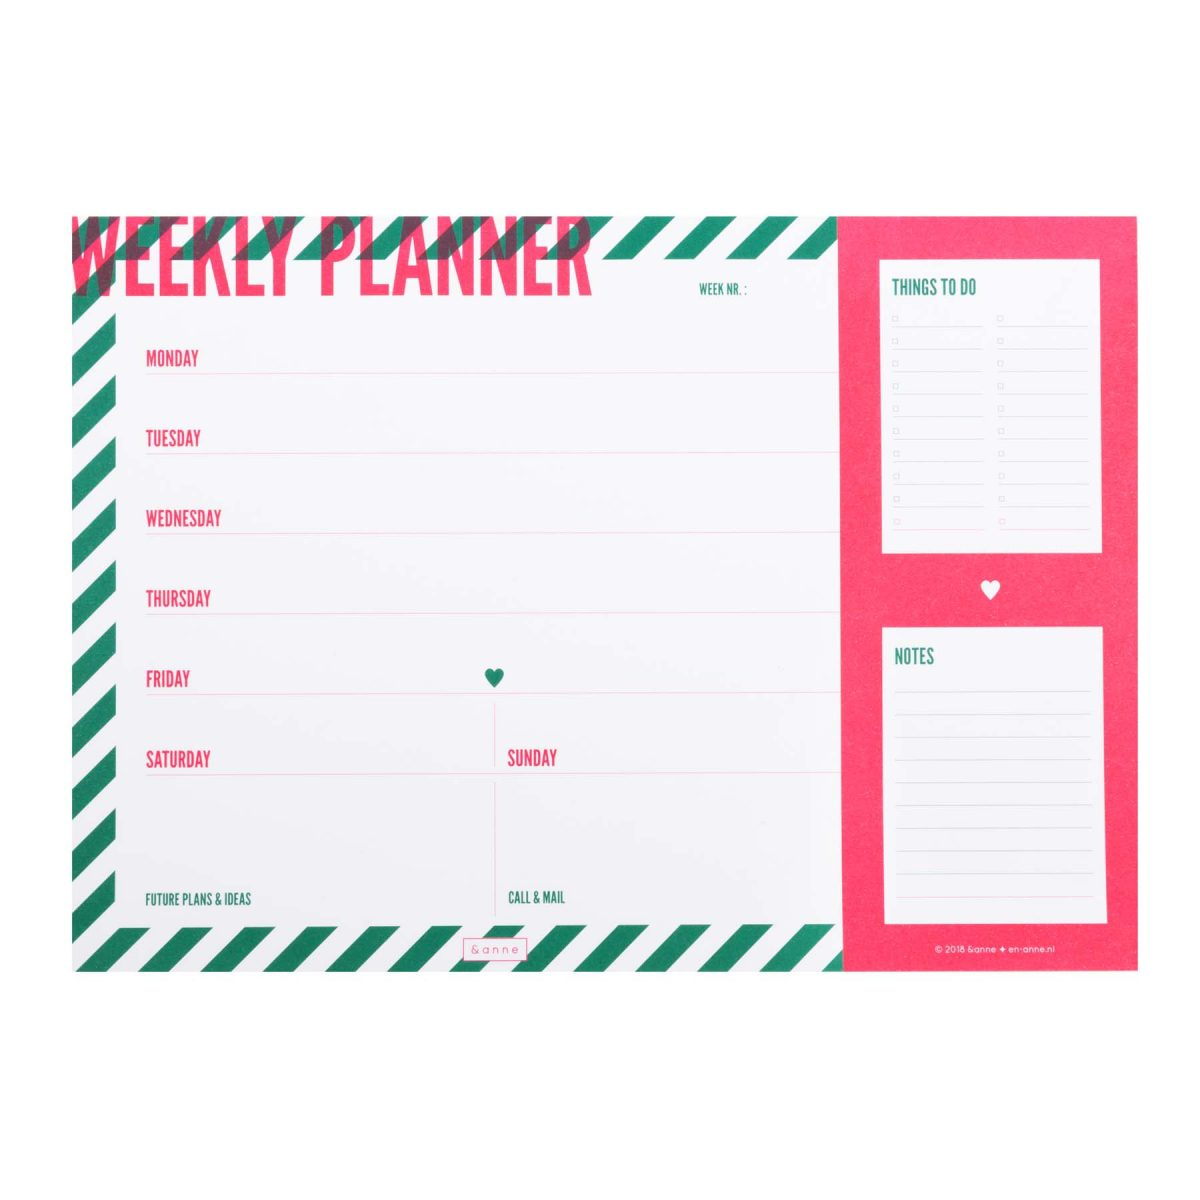 &anne Stationery - Weekly planner